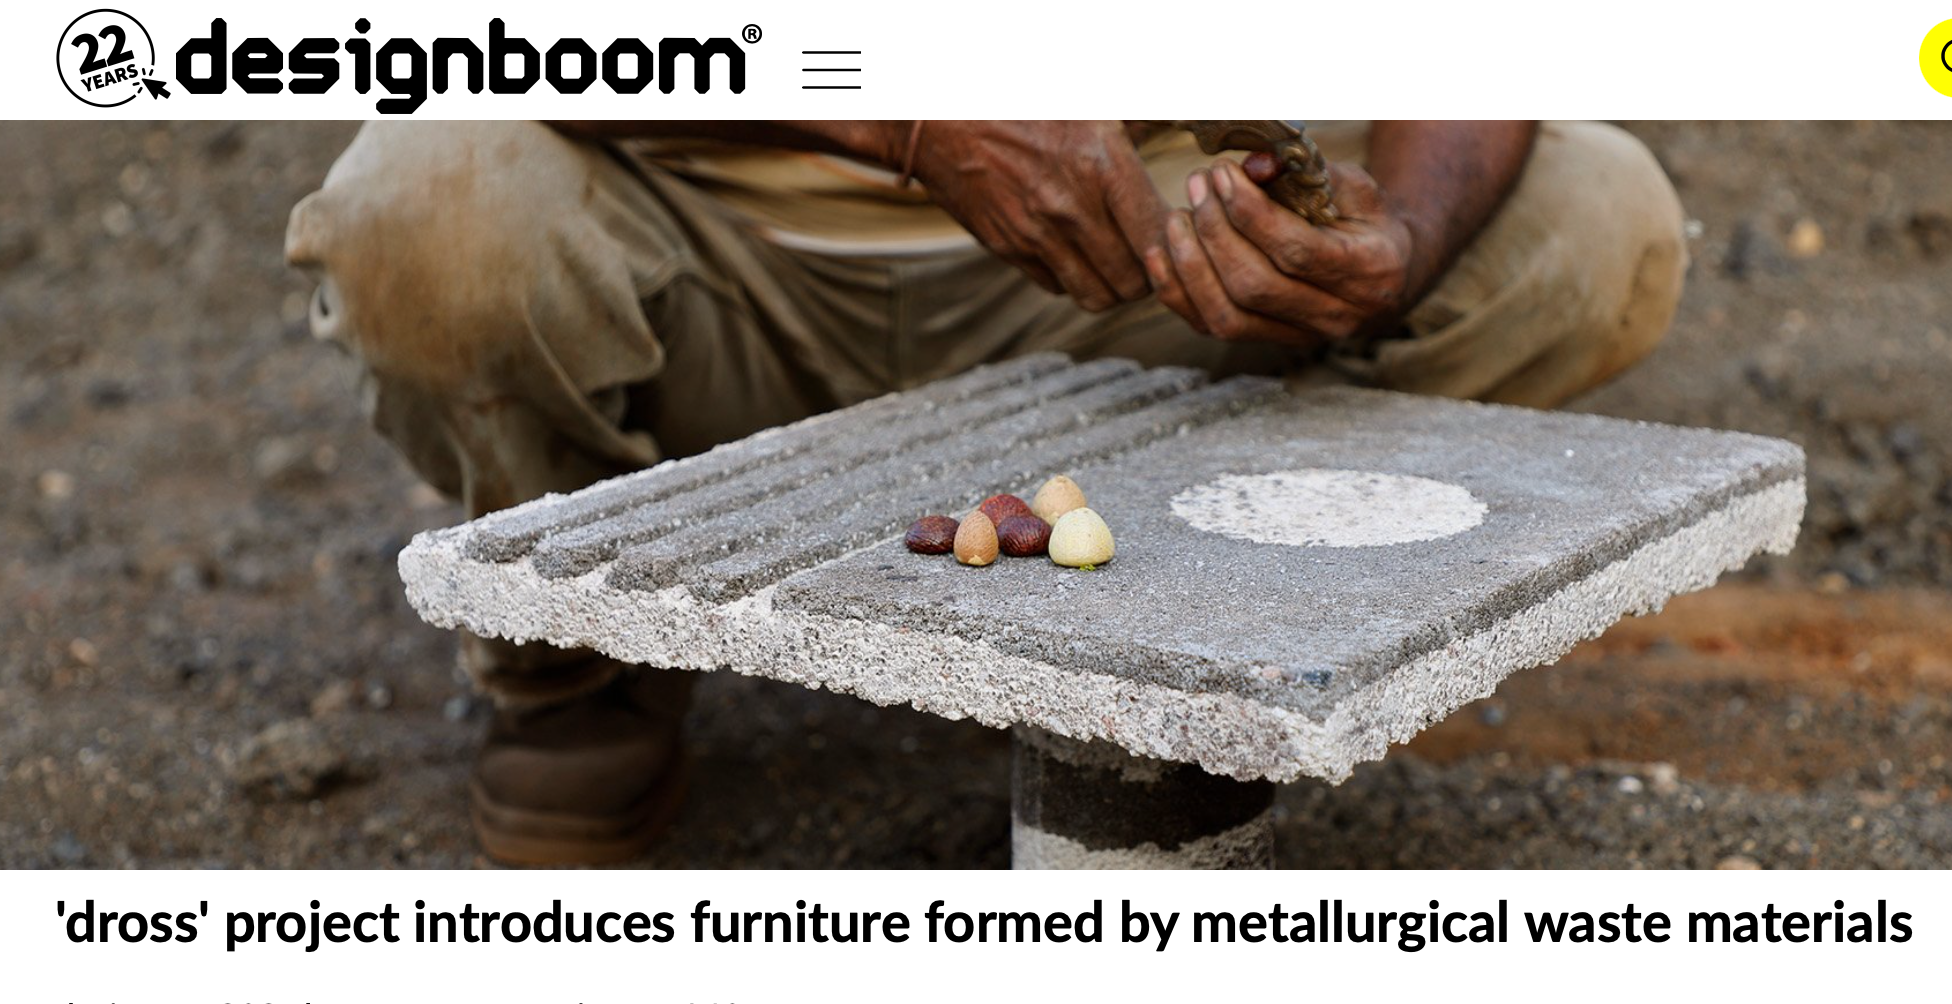 Designboom -'dross' project introduces furniture formed by metallurgical waste materials